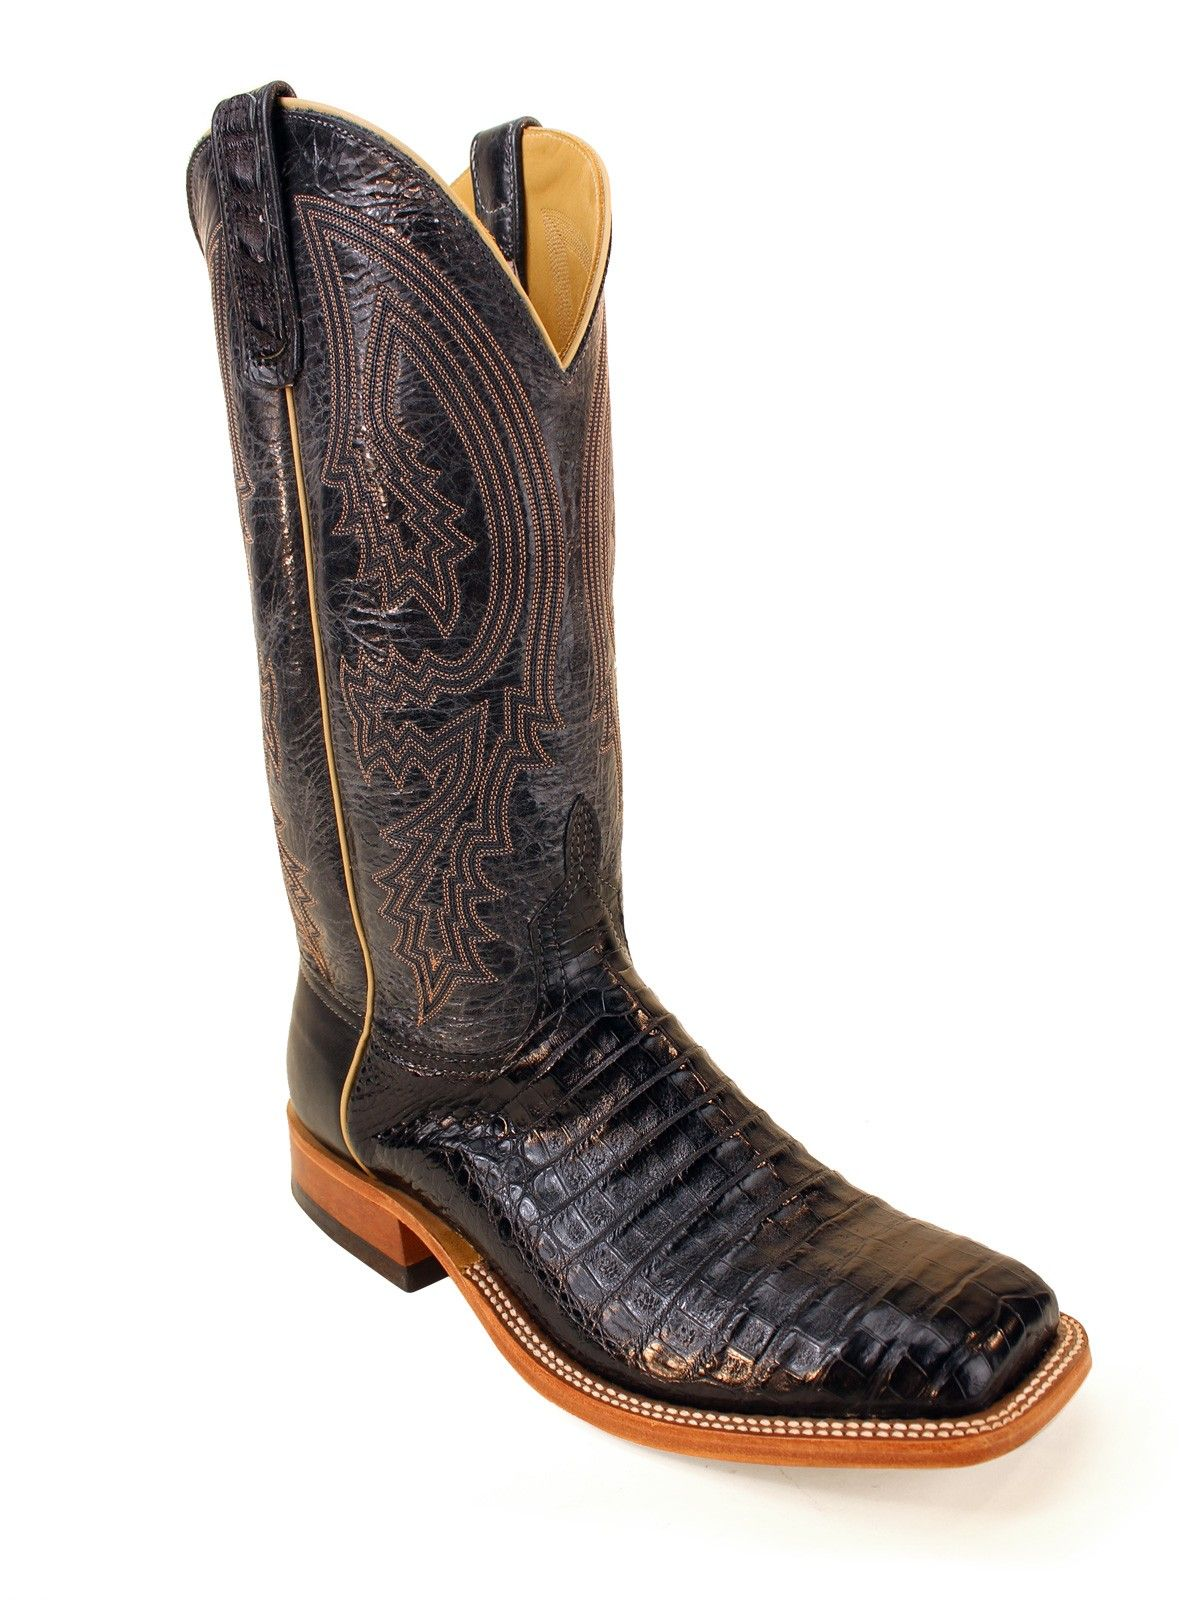 5f62f5621f7 Mens Anderson Bean Black Caiman Belly Boots S1104 -Texas Boot ...